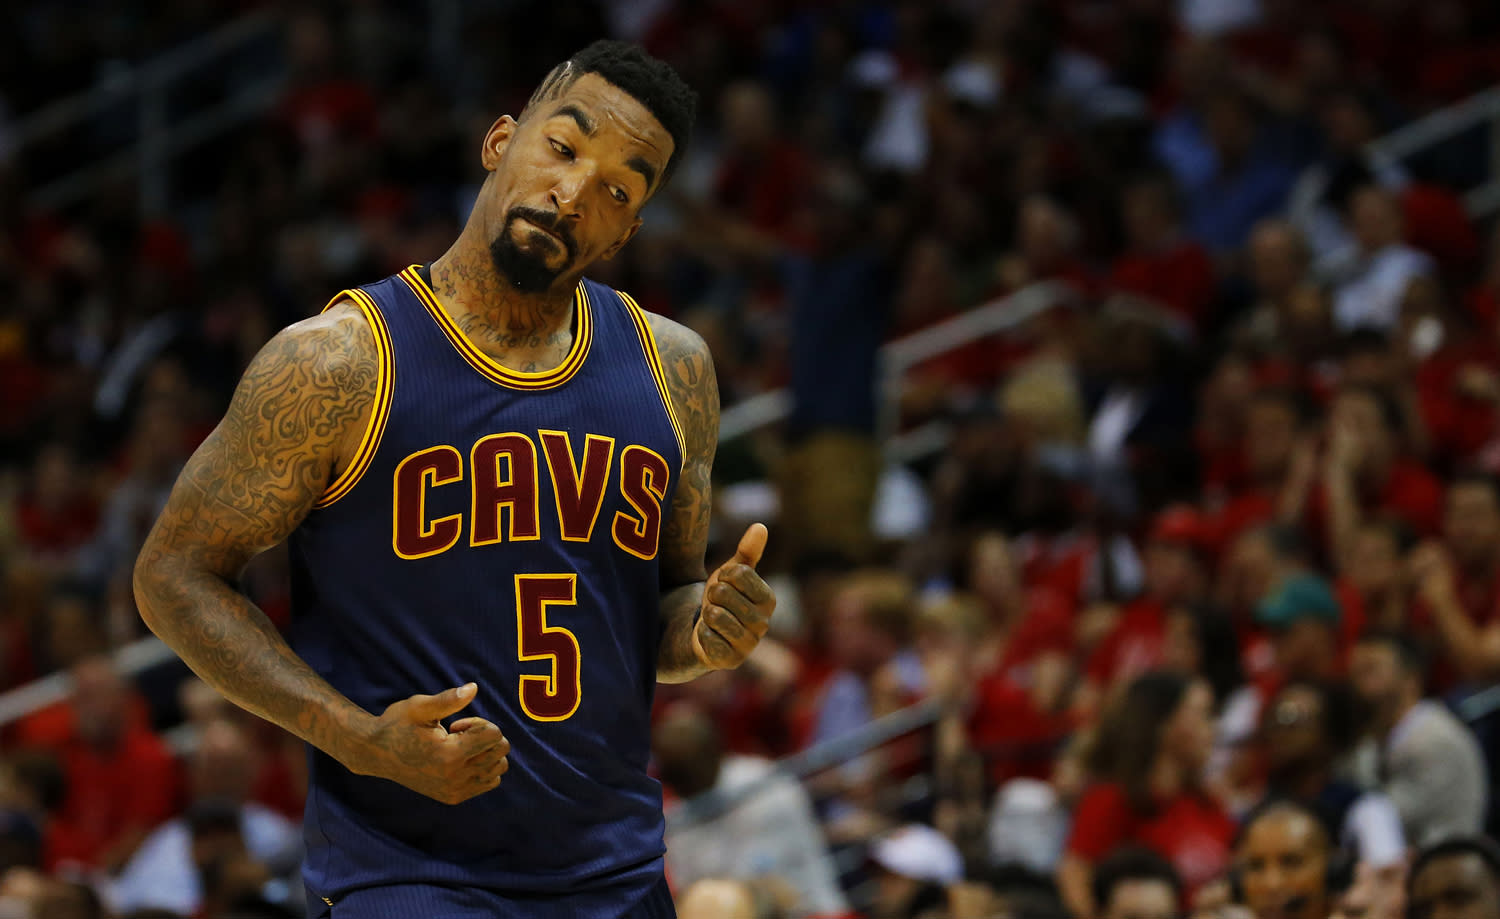 LeBron James told the Cavs to make the J.R. Smith trade that saved Cleveland's season